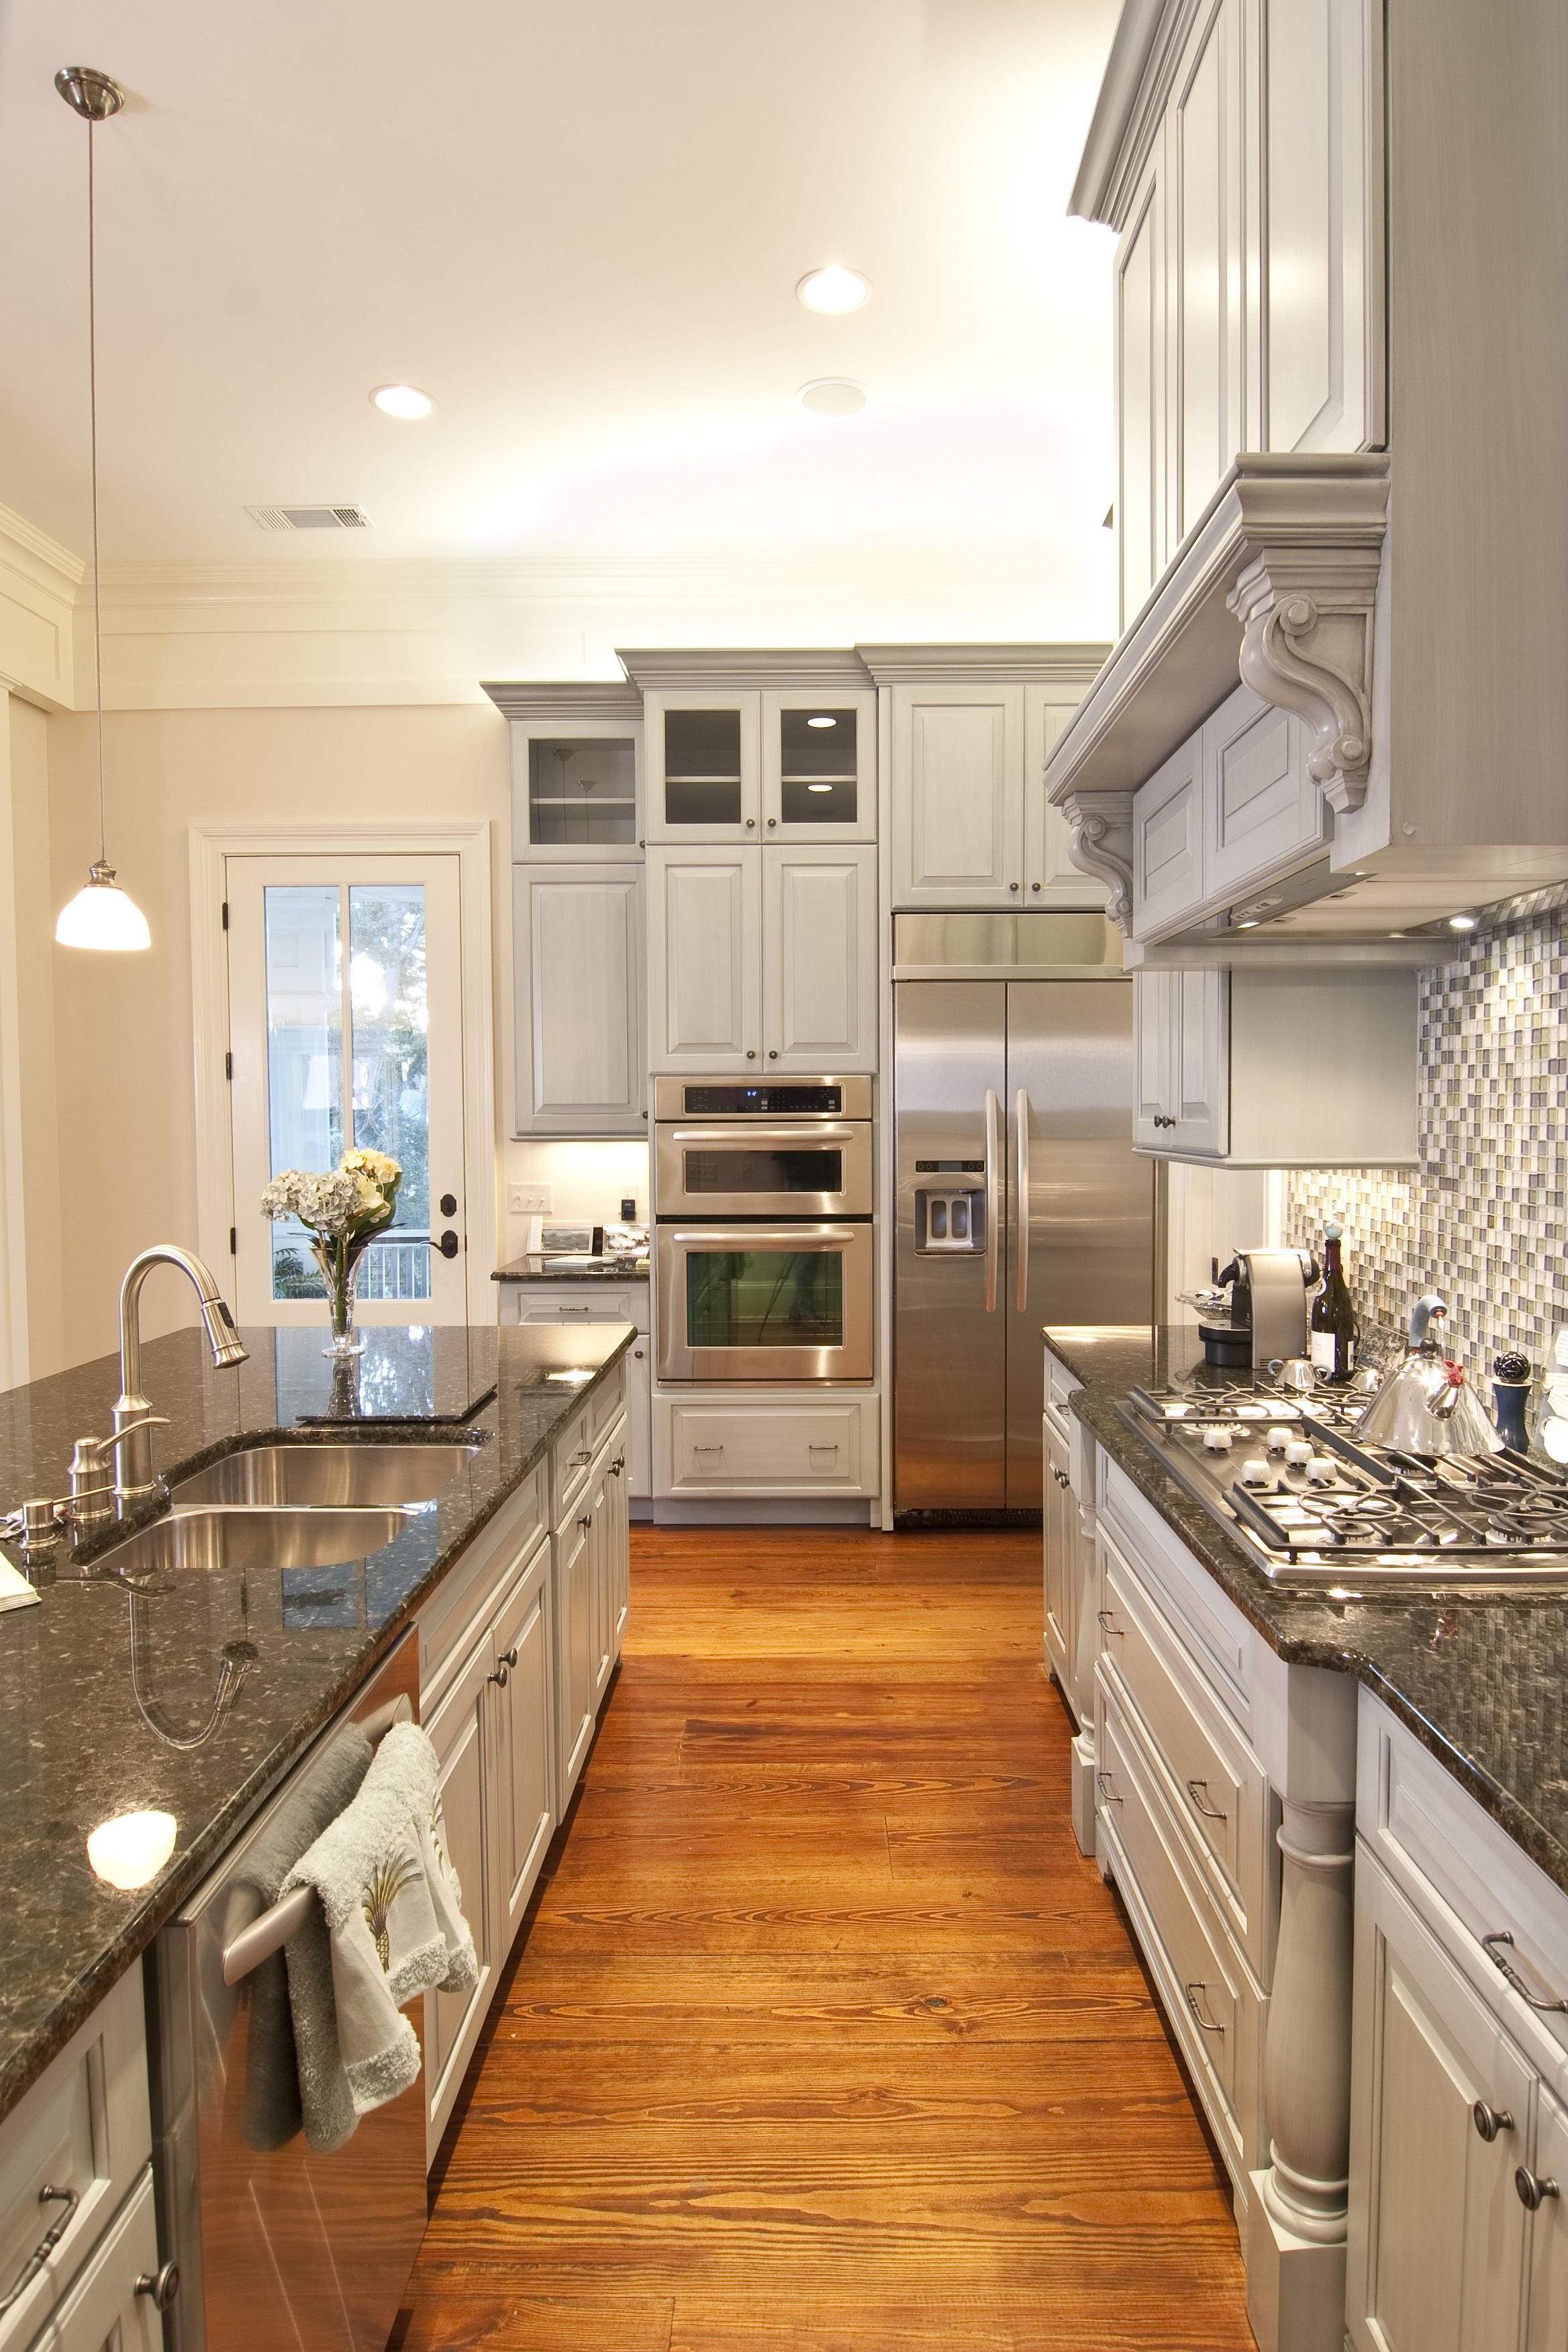 101 Custom Kitchen Design Ideas Pictures Home Beautiful